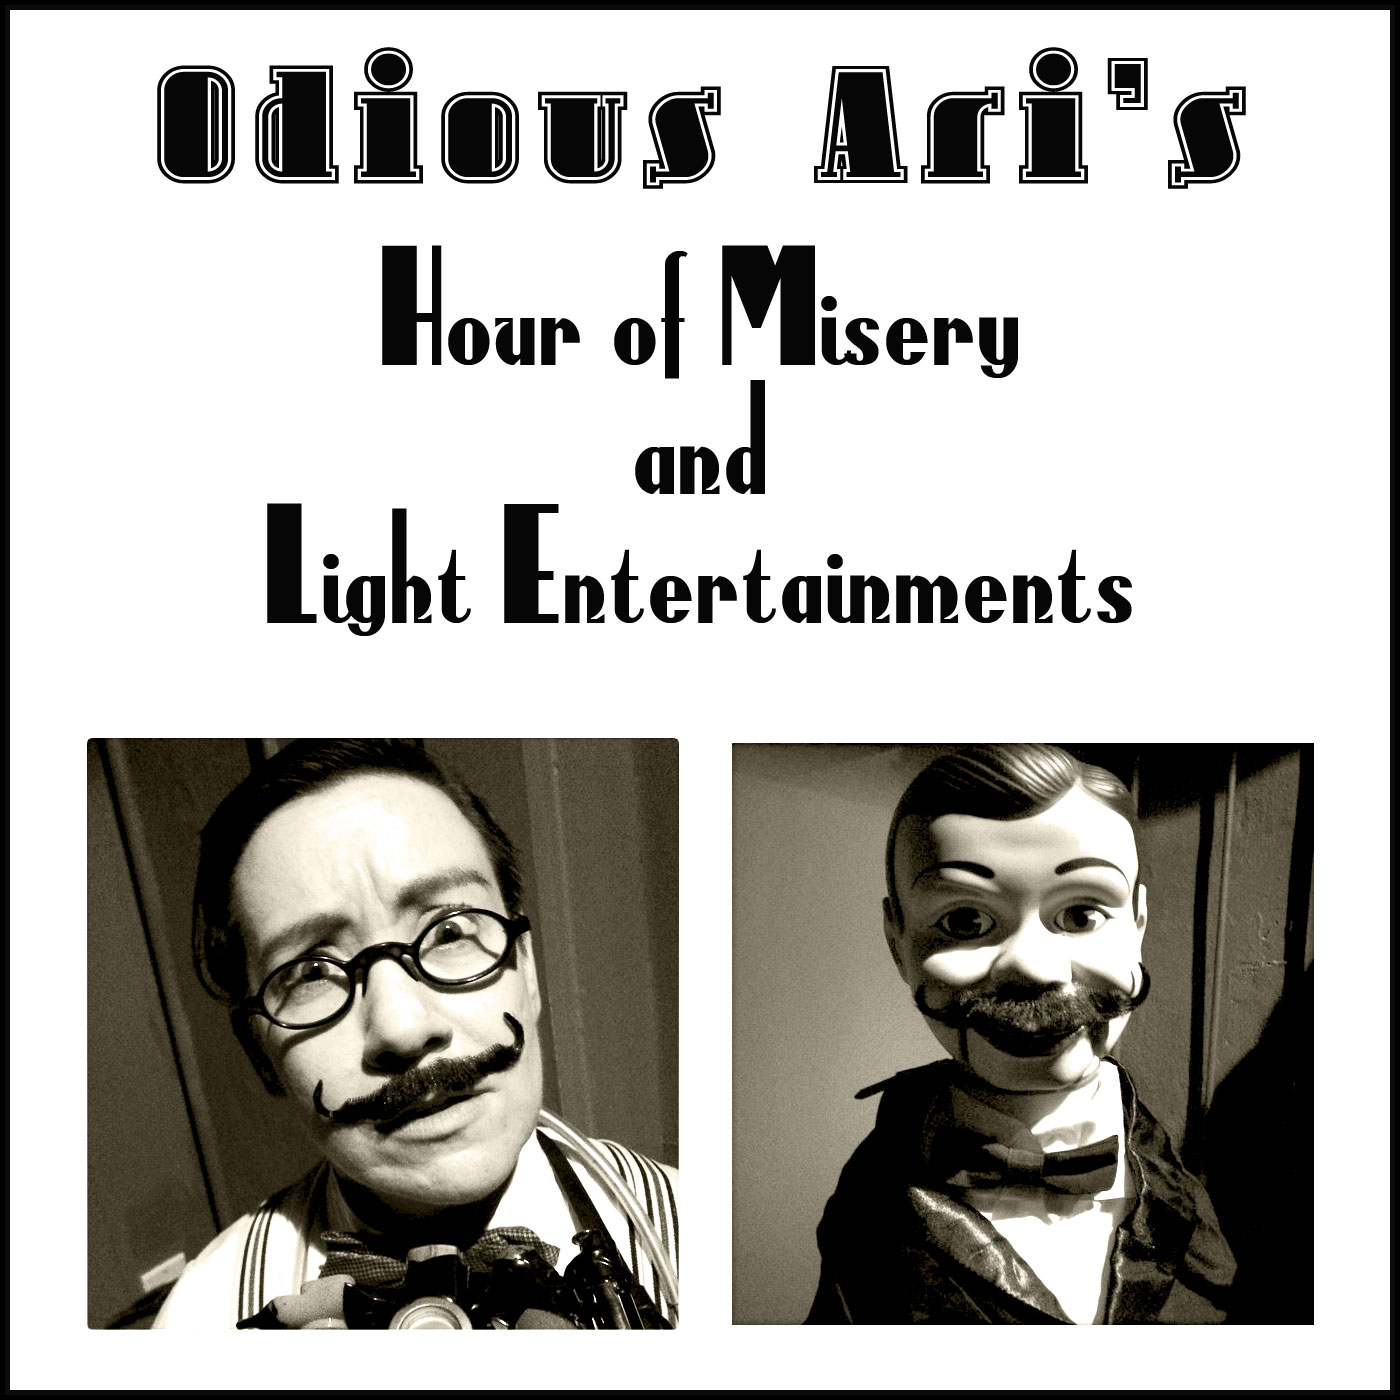 Odious Ari's Hour of Misery and Light Entertainments